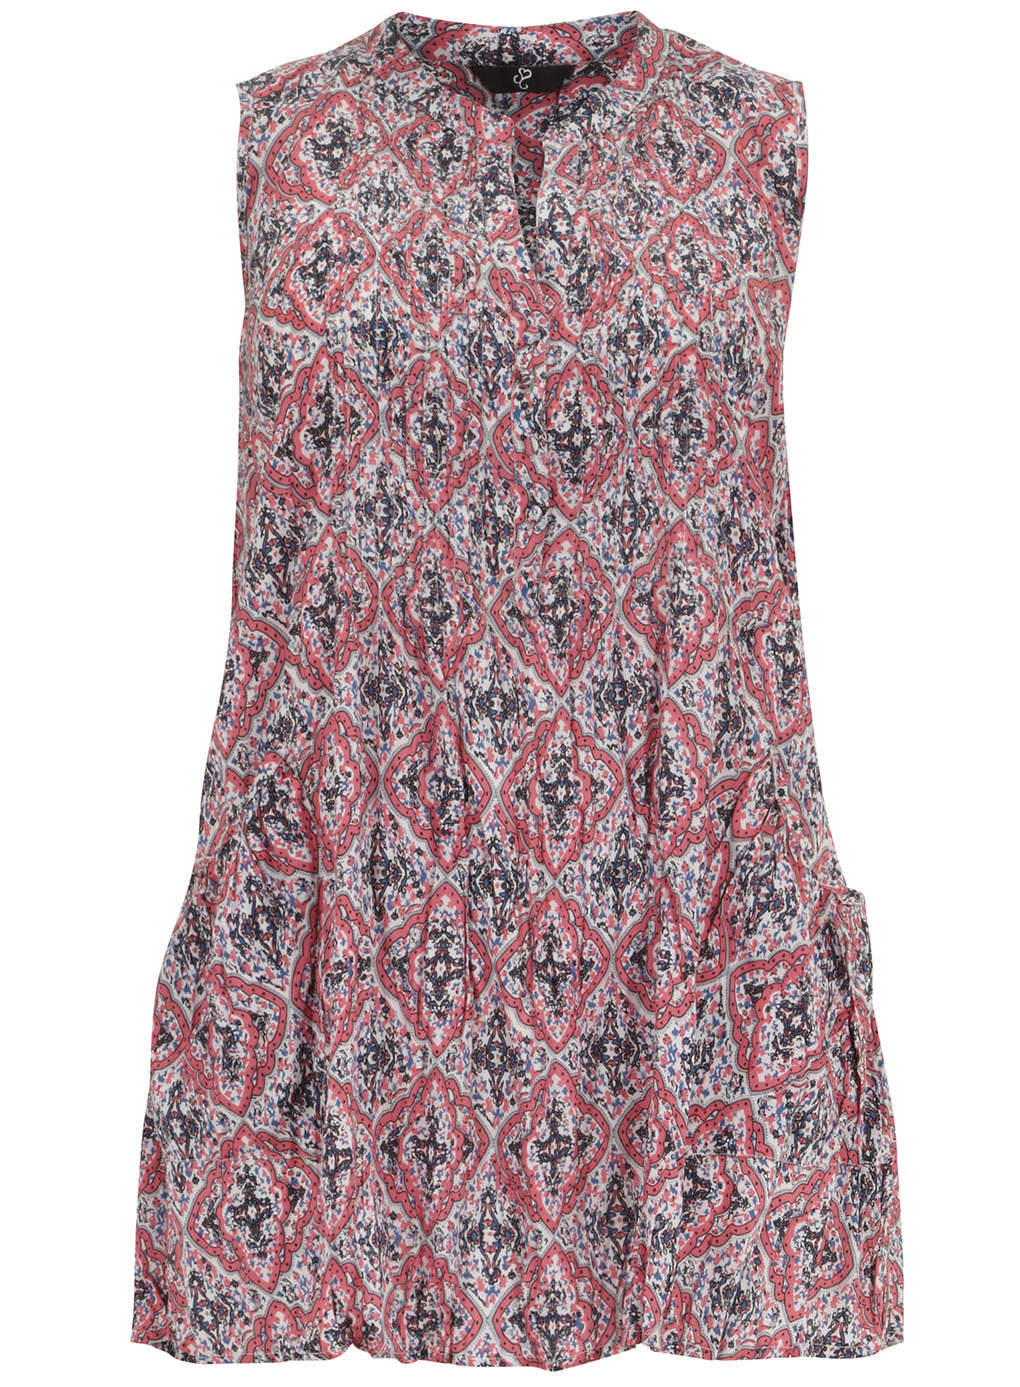 Multi Print Crinkle Tunic - sleeve style: sleeveless; length: below the bottom; style: tunic; pattern: paisley; predominant colour: terracotta; secondary colour: black; occasions: casual; neckline: collarstand & mandarin with v-neck; fibres: viscose/rayon - 100%; fit: loose; sleeve length: sleeveless; texture group: cotton feel fabrics; pattern type: fabric; season: s/s 2014; pattern size: big & busy (top)